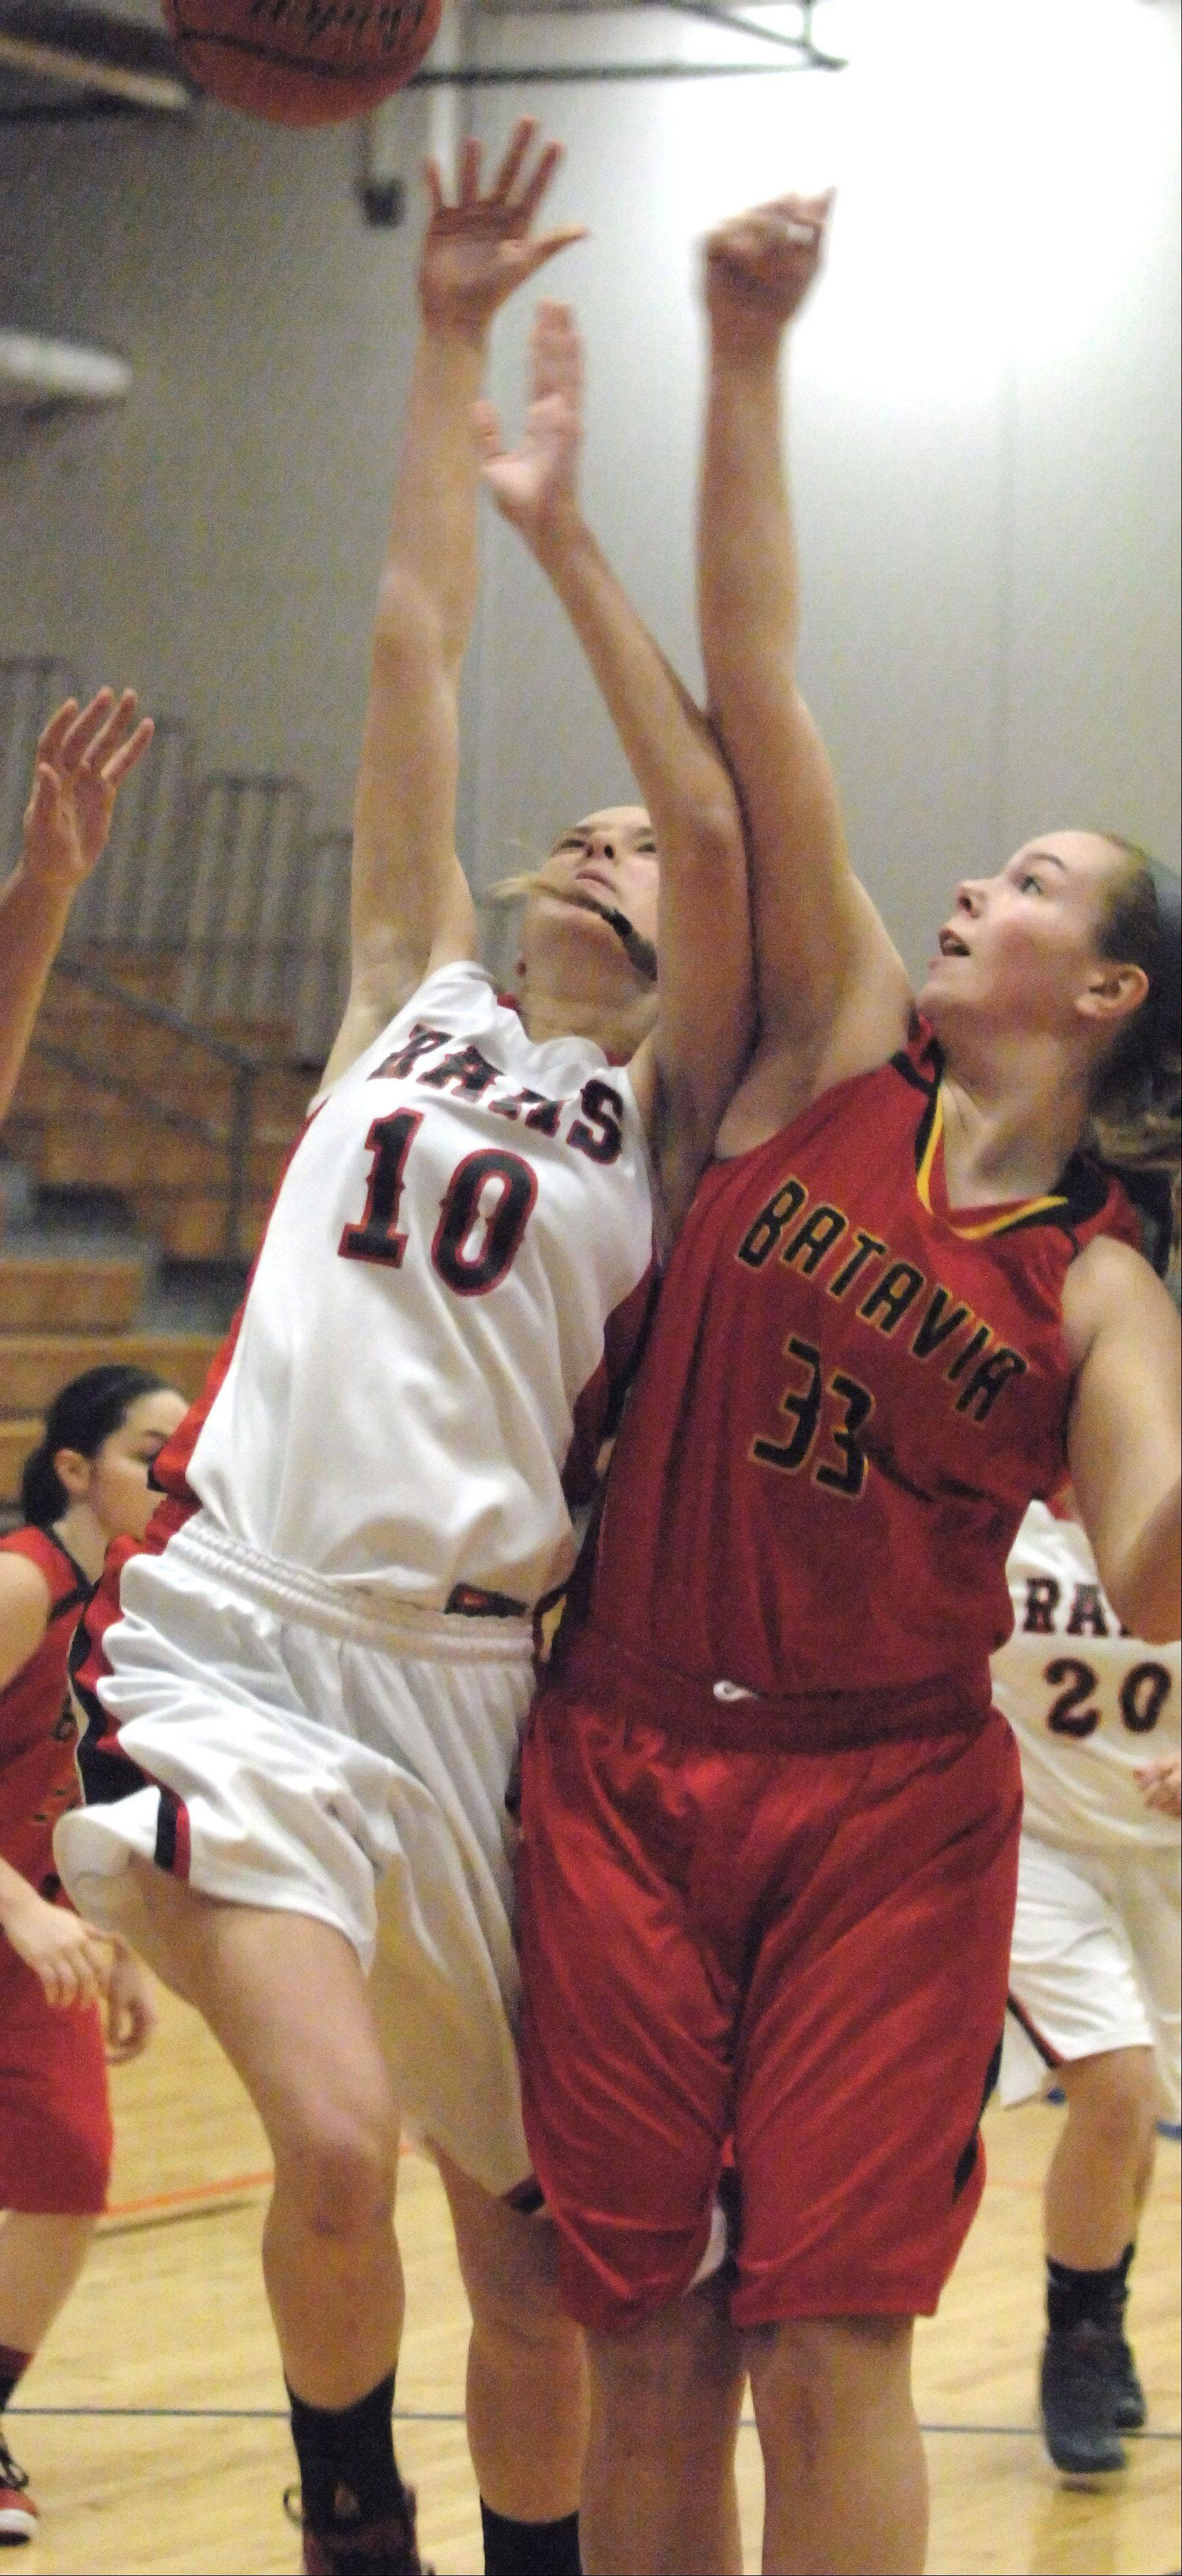 Allison Hansen of Glenbard East and Erin Bayram of Batavia go up for a rebound during the Batavia vs. Glenbard East game at the Oswego holiday tournament.